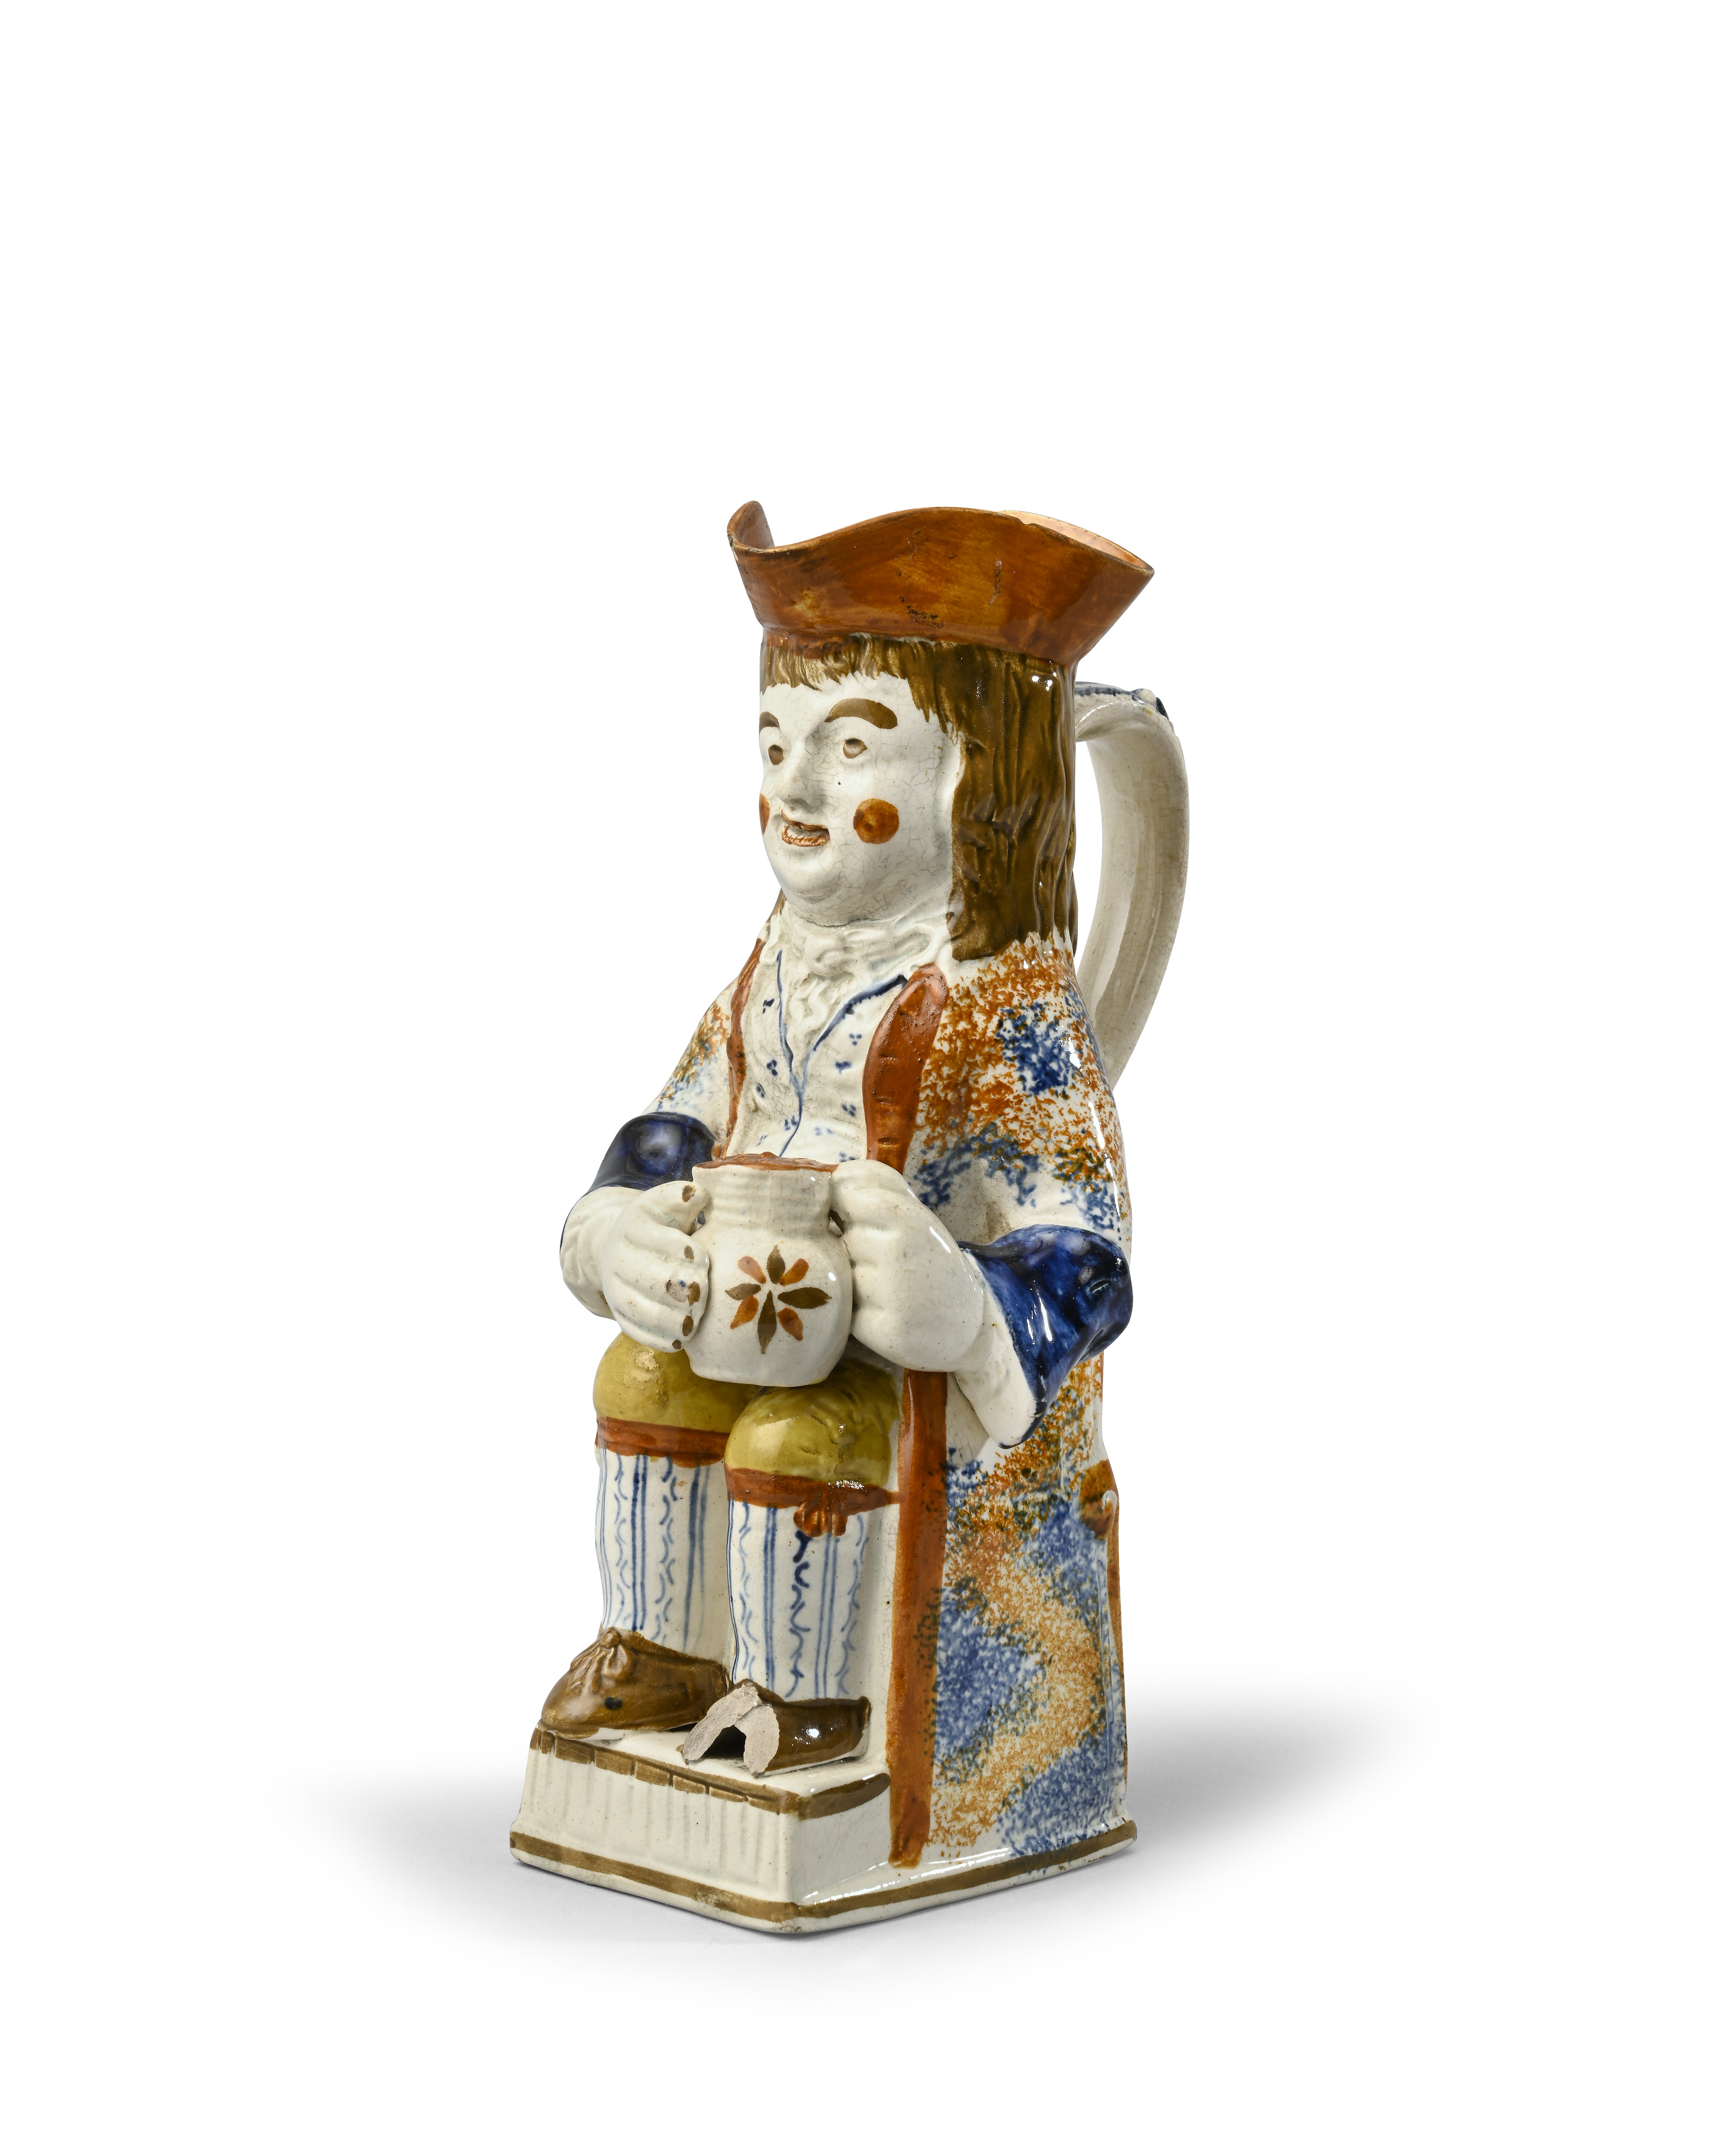 A rare Pratt ware Thin Boy toby jug c.1790-1800, seated with a patterned jug of ale resting on his